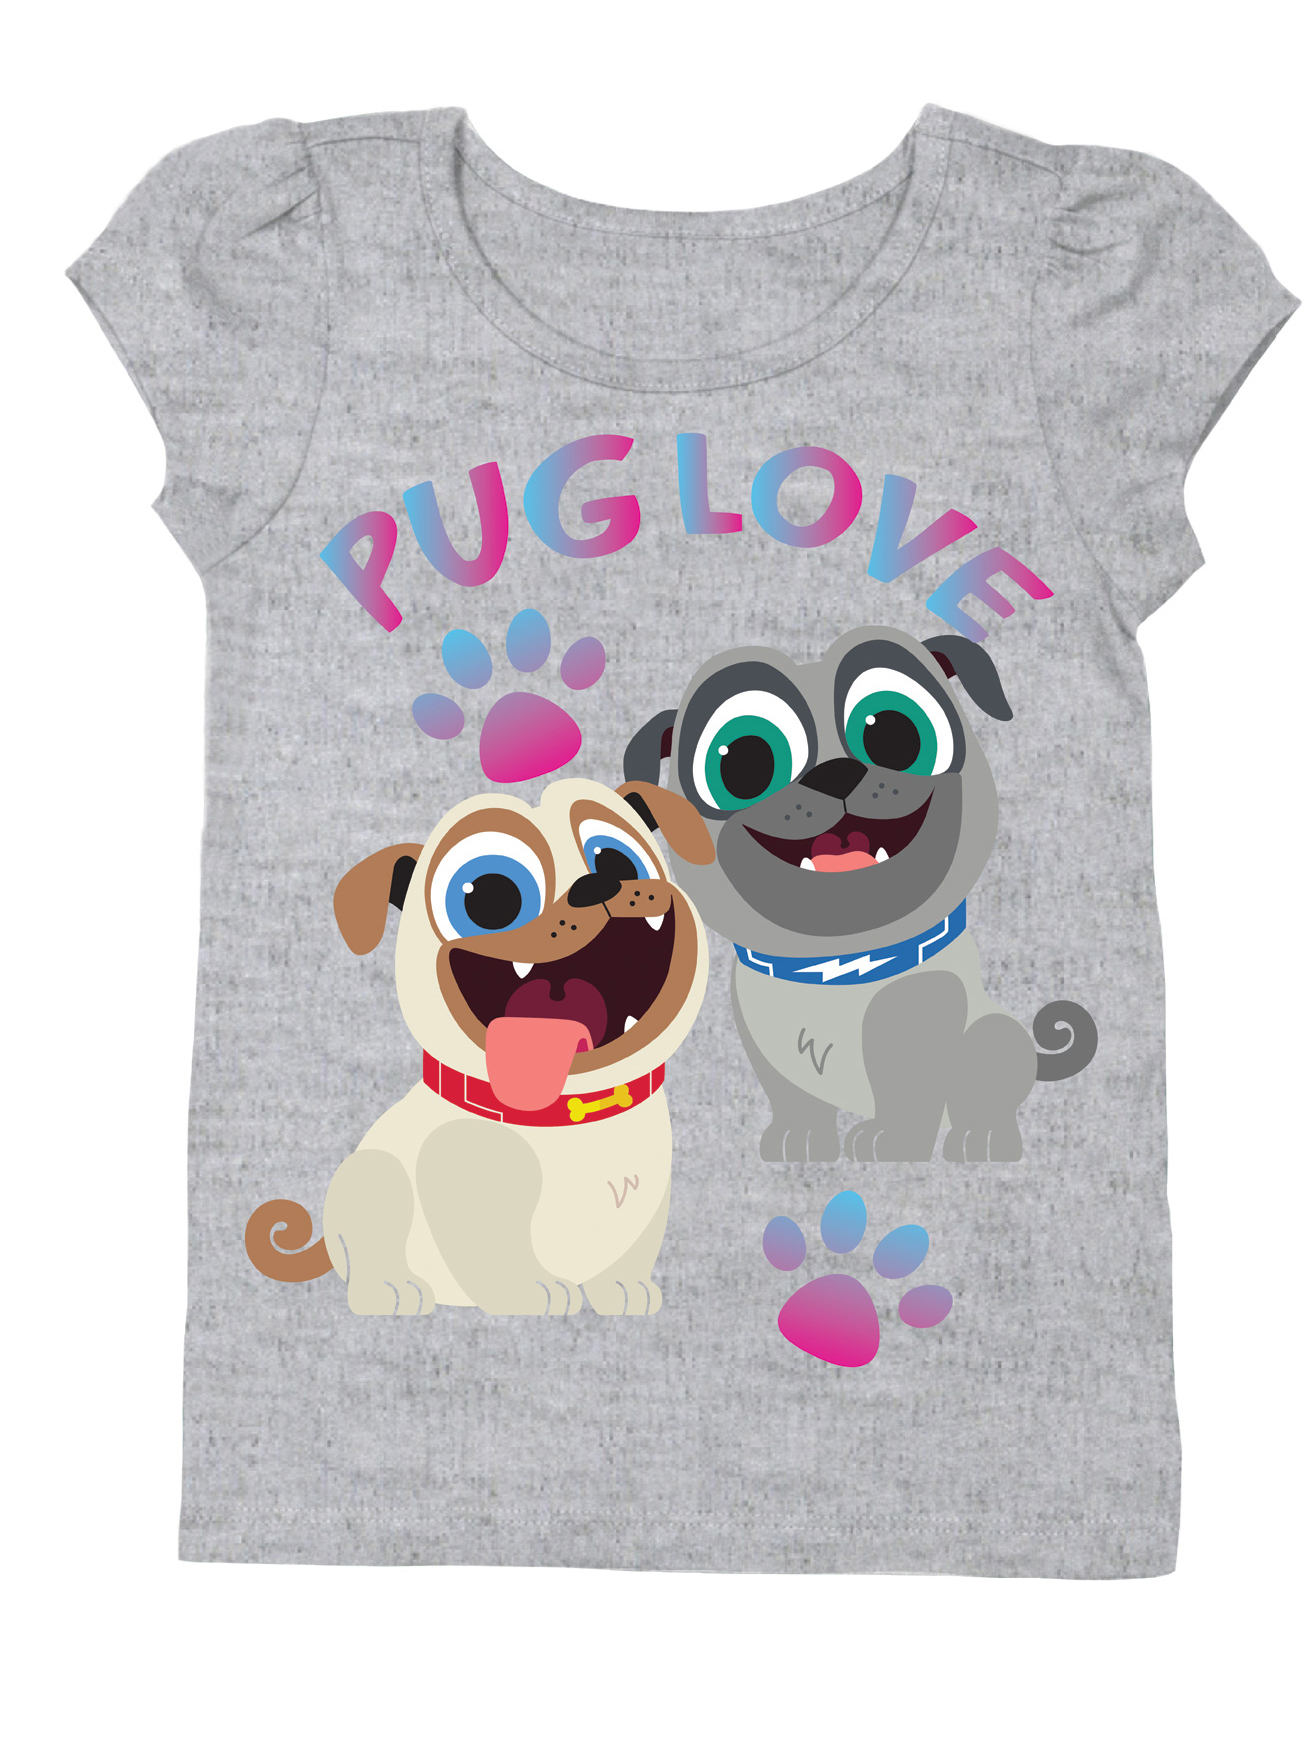 Pug Love Short Sleeve Graphic Tshirt (Toddler Girls)